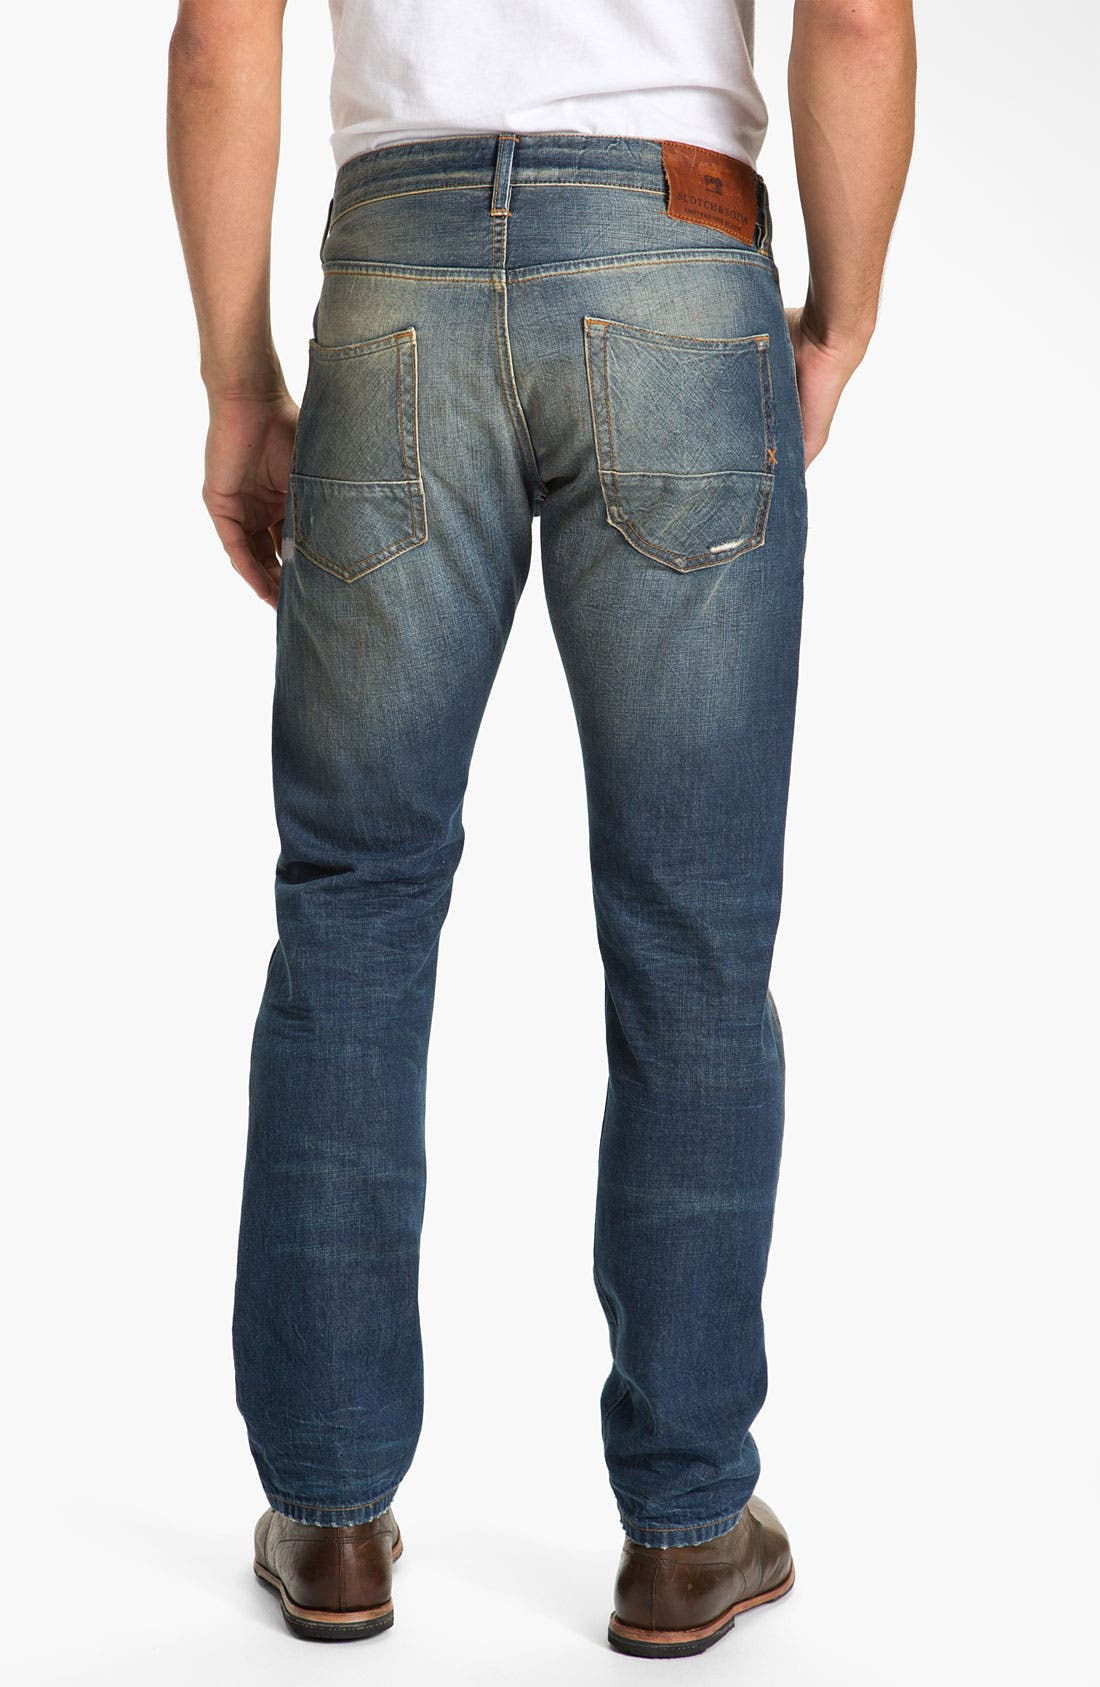 Alternate Image 1 Selected - Scotch & Soda 'Ralston' Slim Straight Leg Jeans (Downtown)